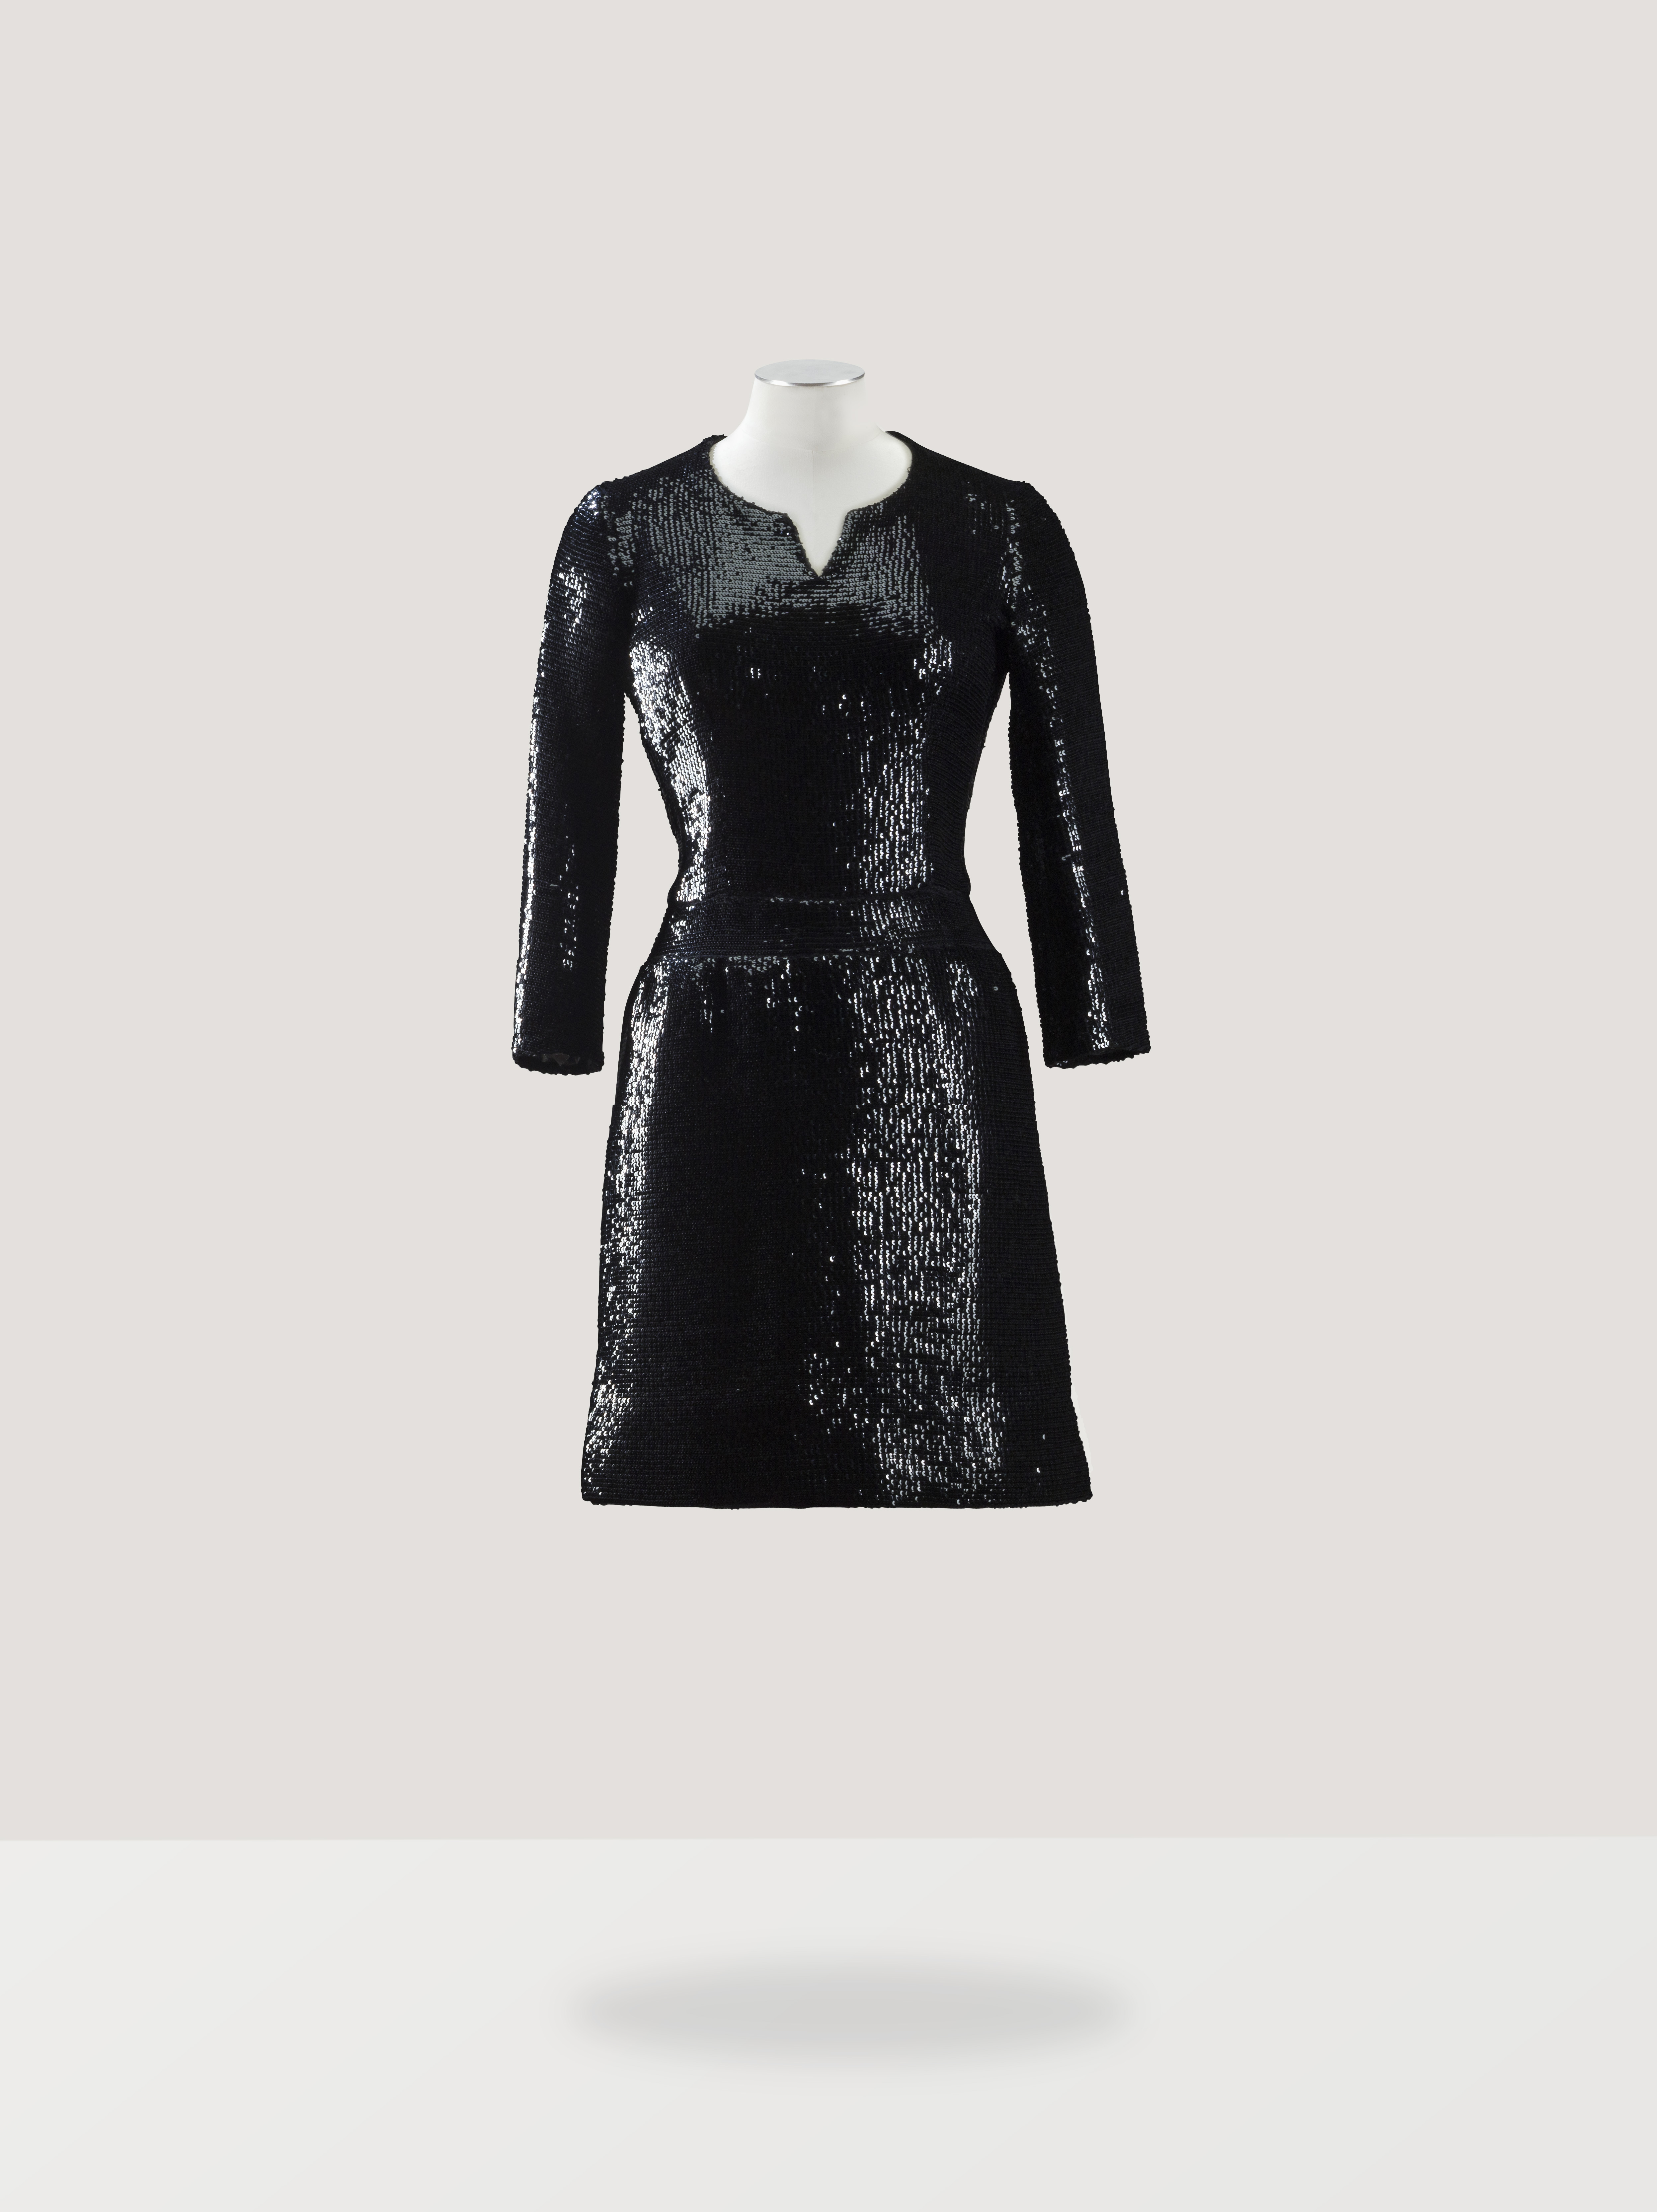 asvof-2015-03-13-every_dress_tells_a_story_couture_from_the_didier_ludot_collection_auction_at_sotheby039s_paris_july_8th-diane_pernet-1906434099.jpg